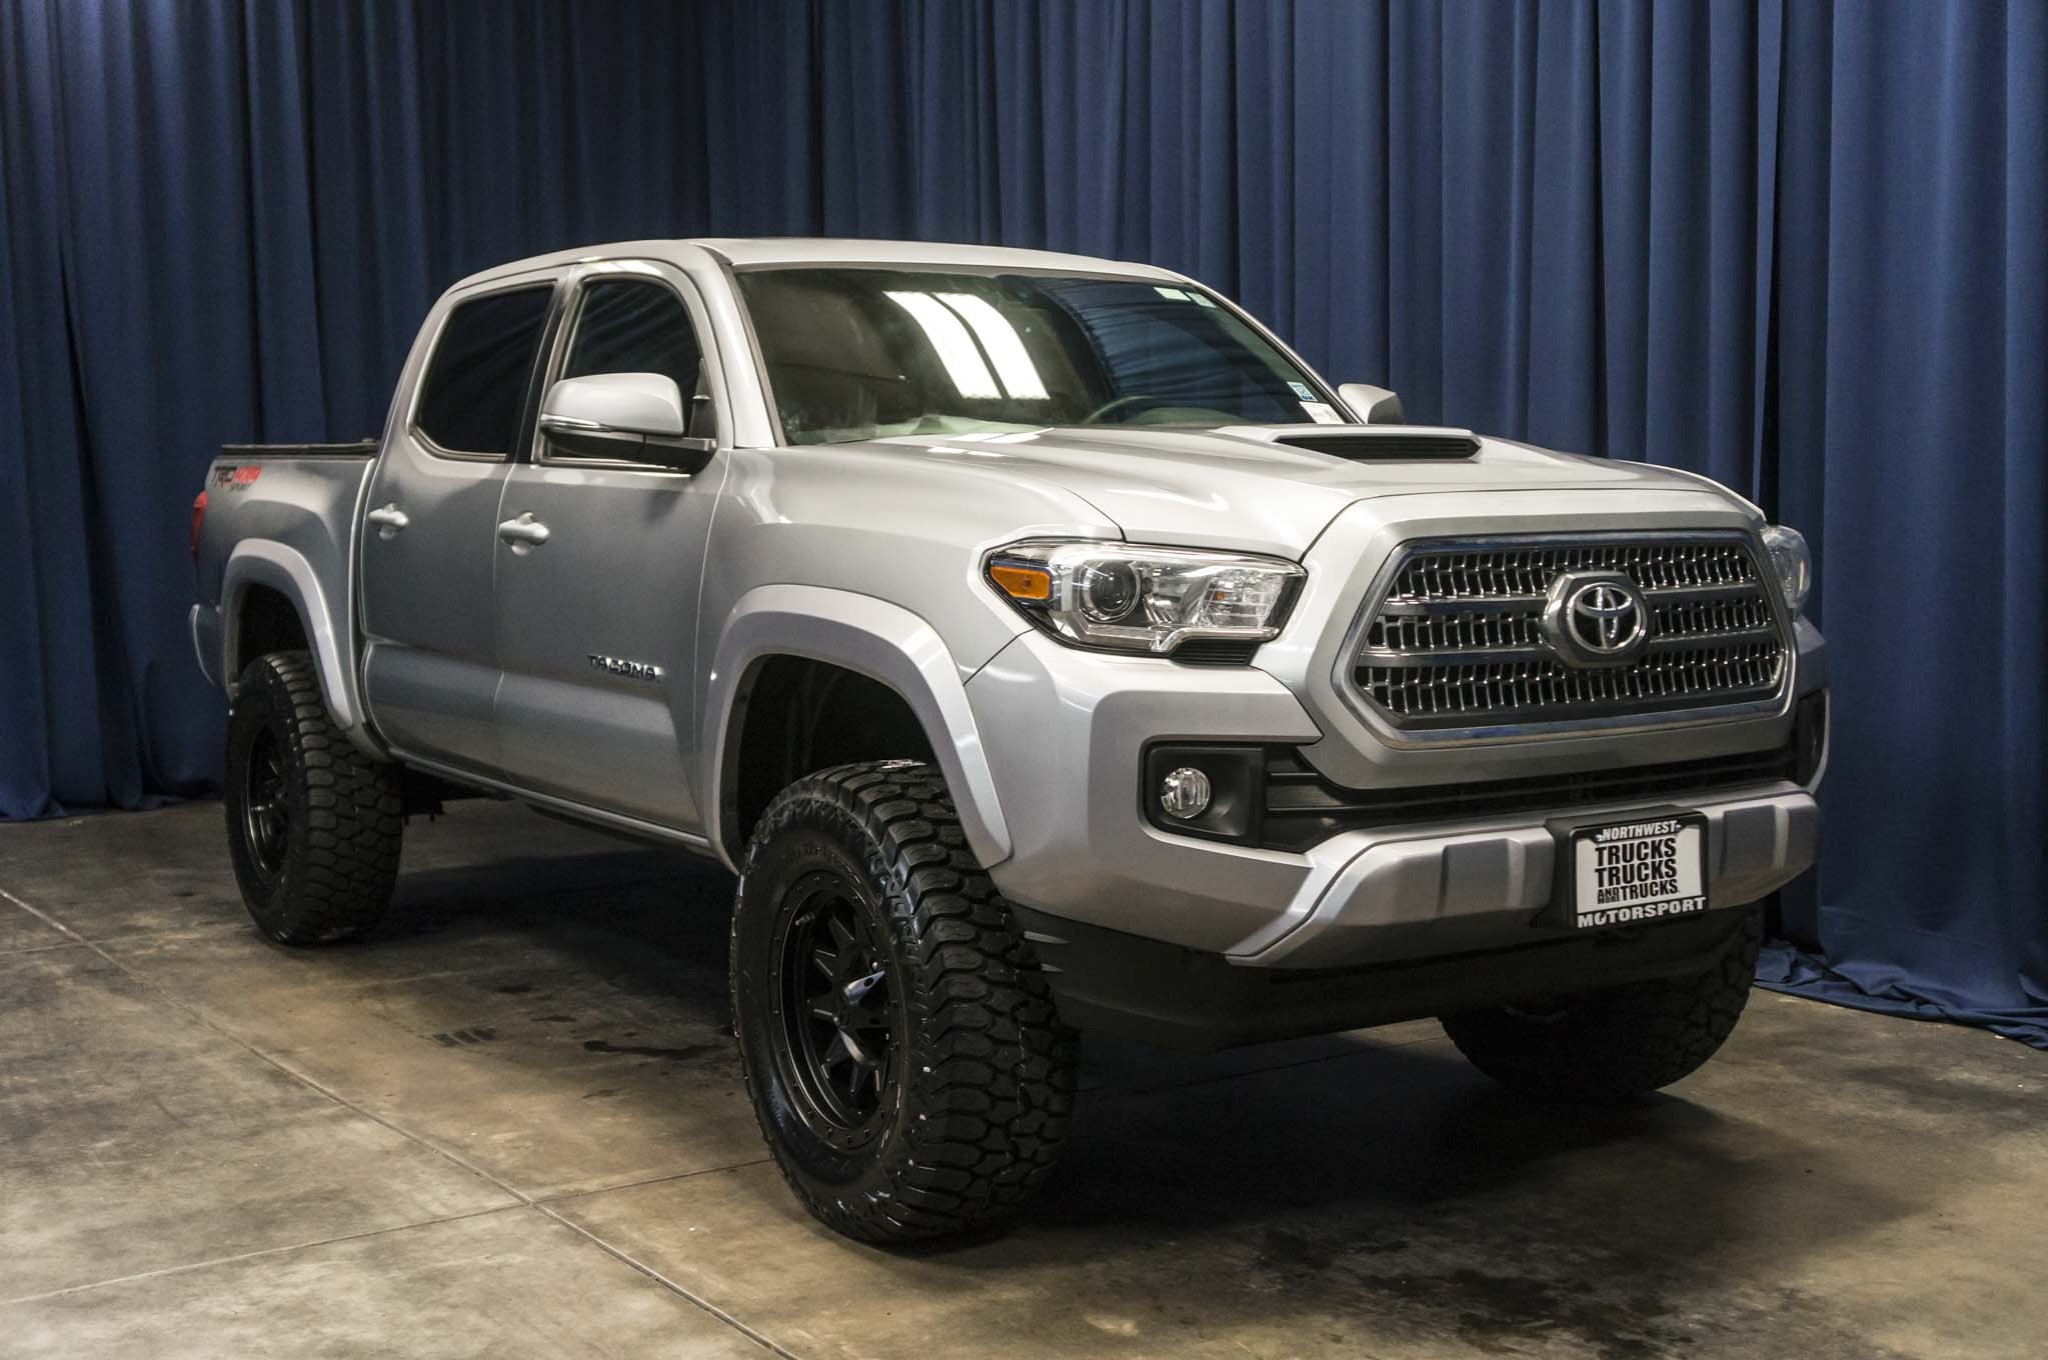 used lifted 2016 toyota tacoma trd sport 4x4 truck for sale 36779. Black Bedroom Furniture Sets. Home Design Ideas